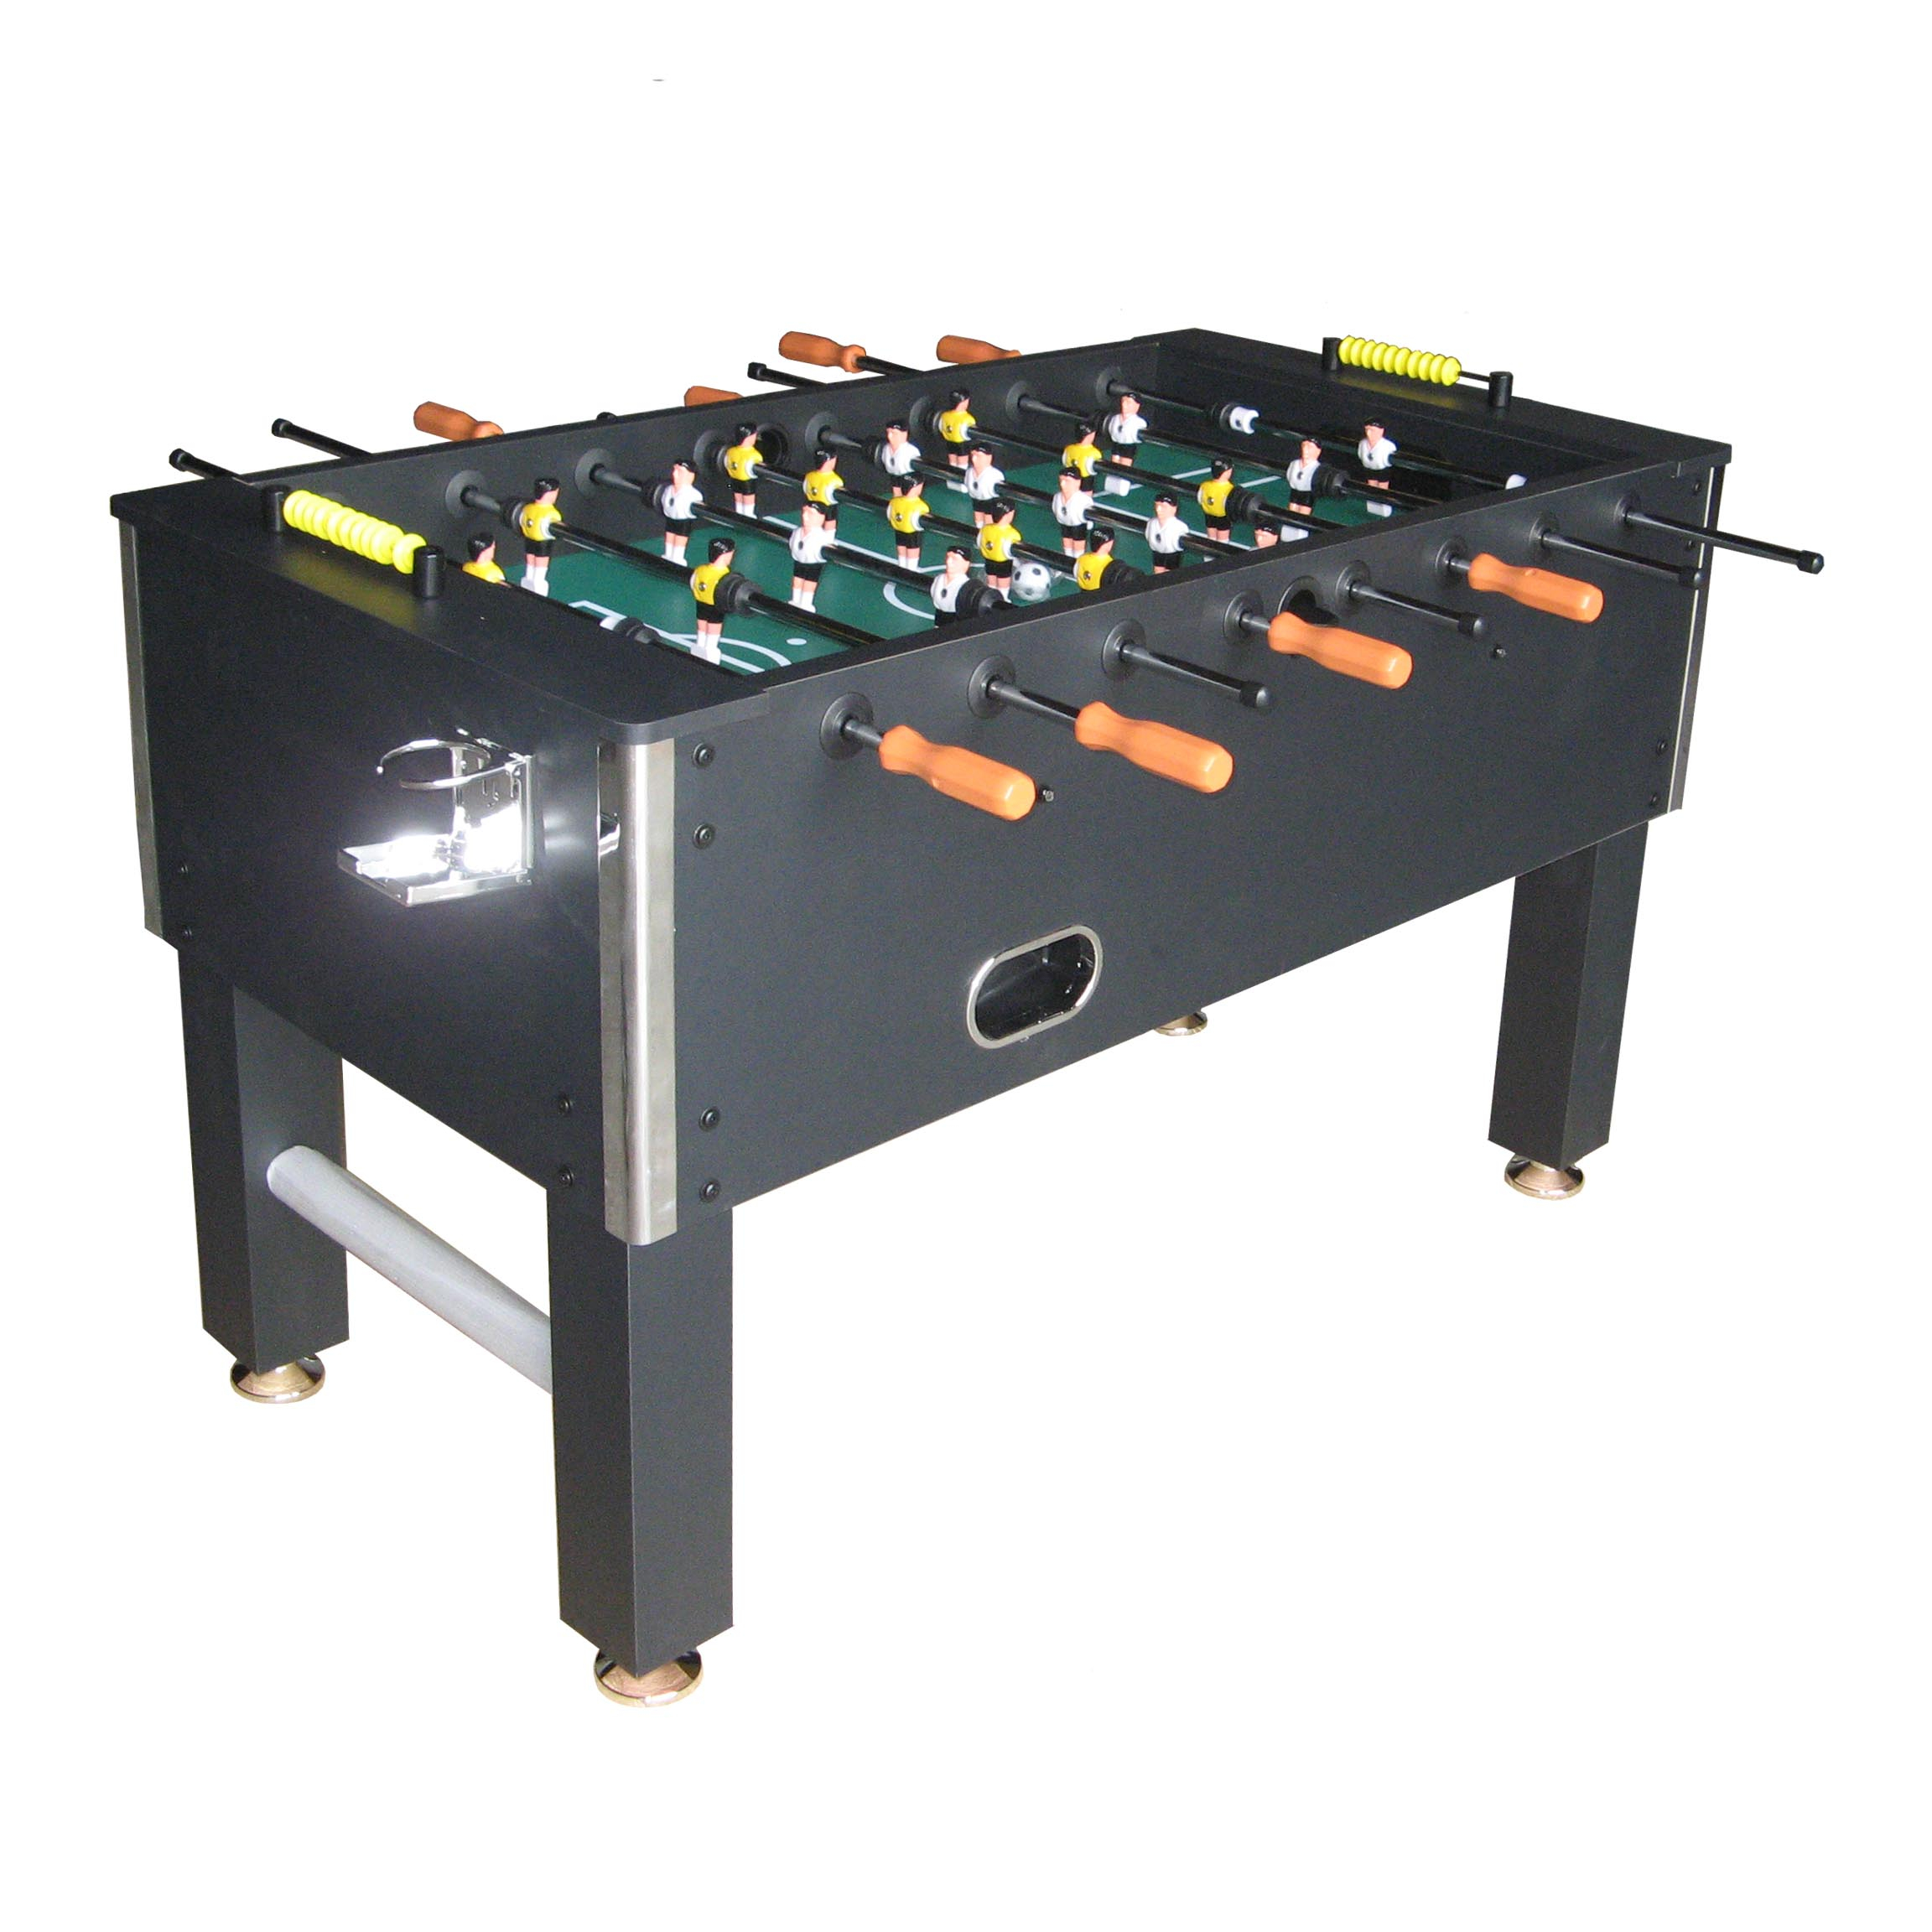 KBL-0924 Black MDF table type Football Table Soccer Game with wood handle grip and 2pcs cup holder freely